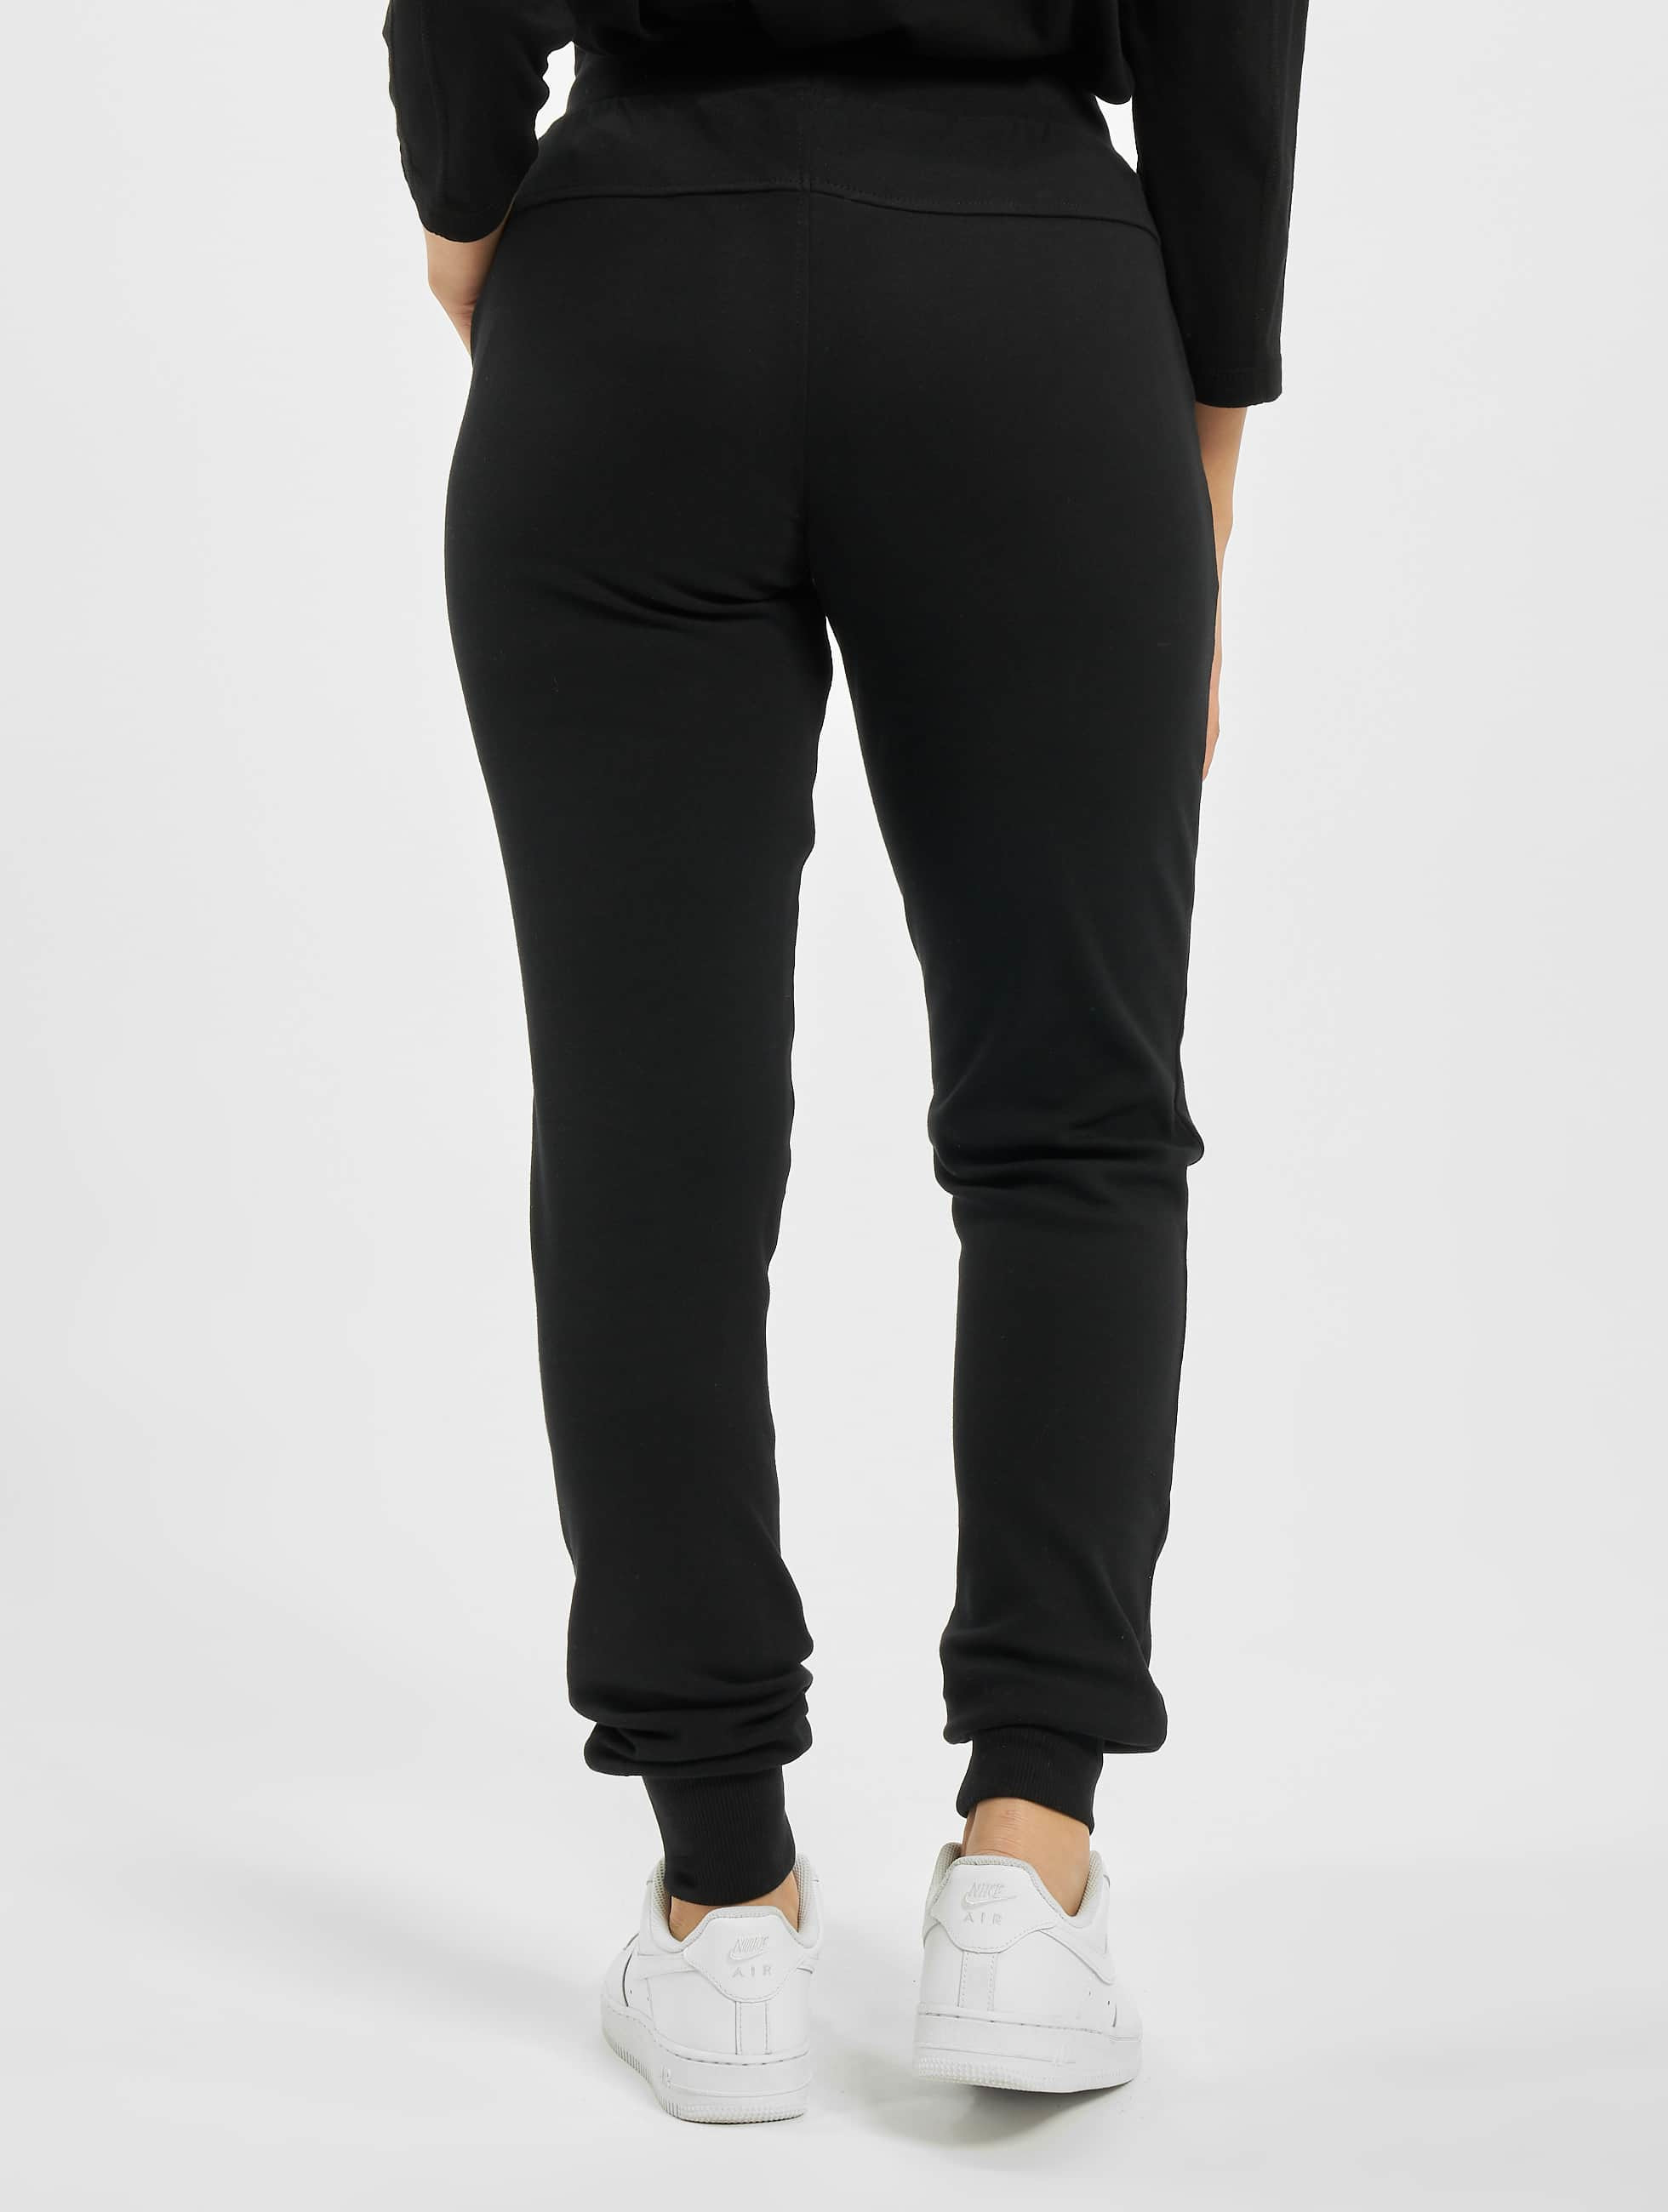 Urban Classics Jogginghose Fitted Athletic schwarz